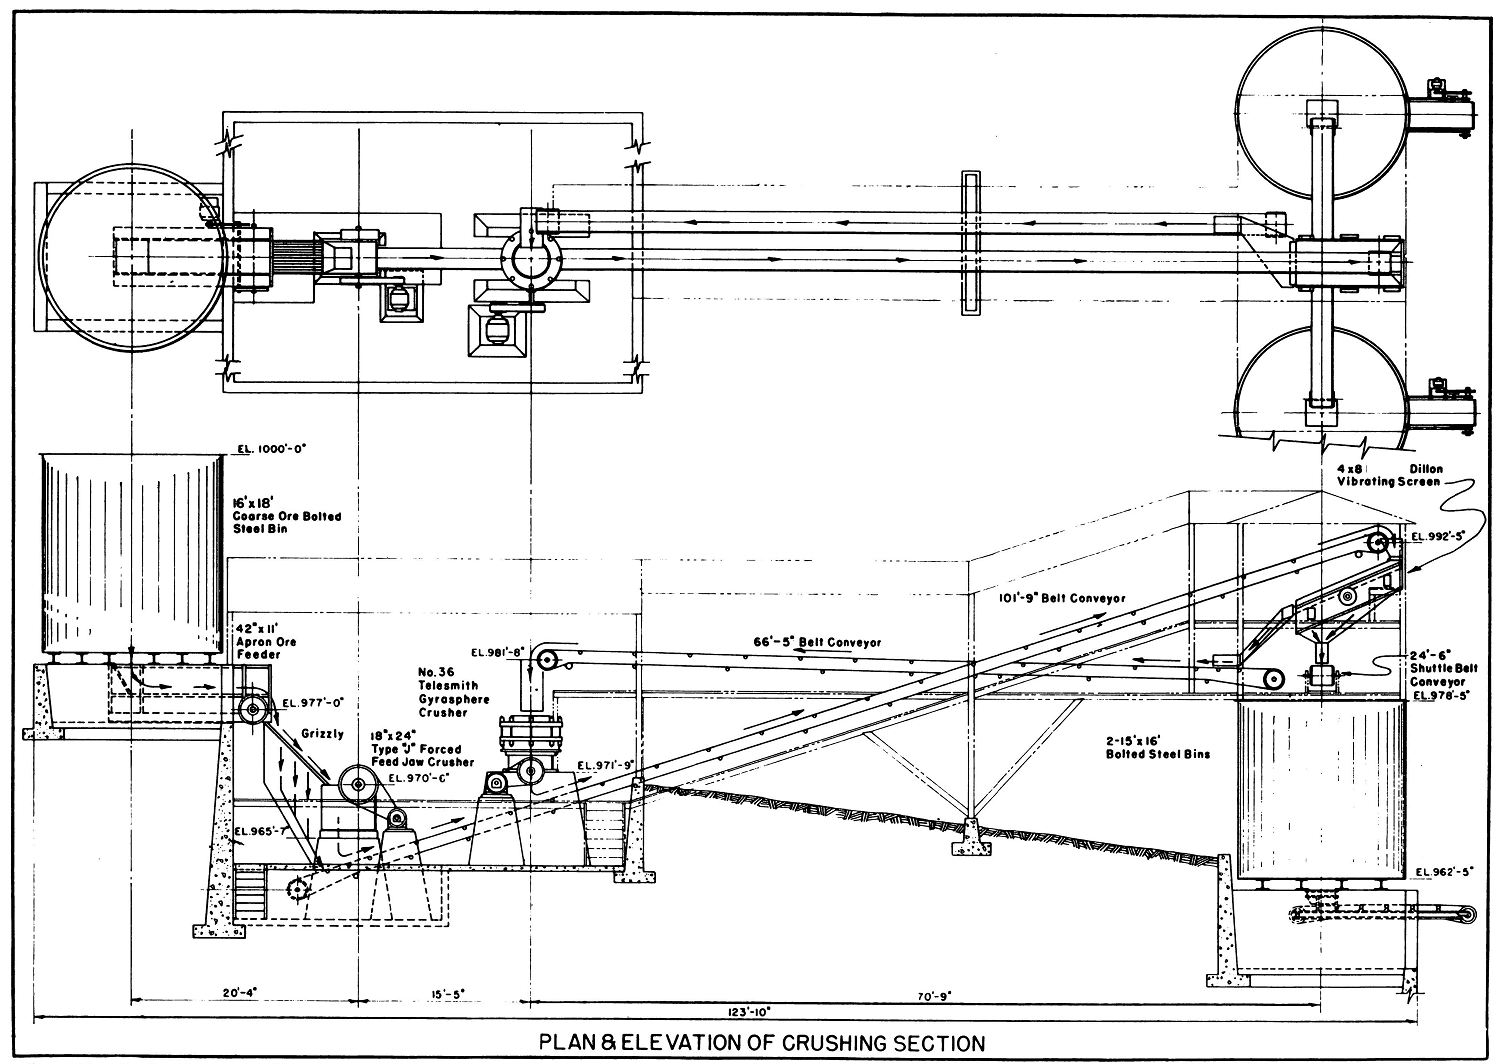 Plan and Elevation